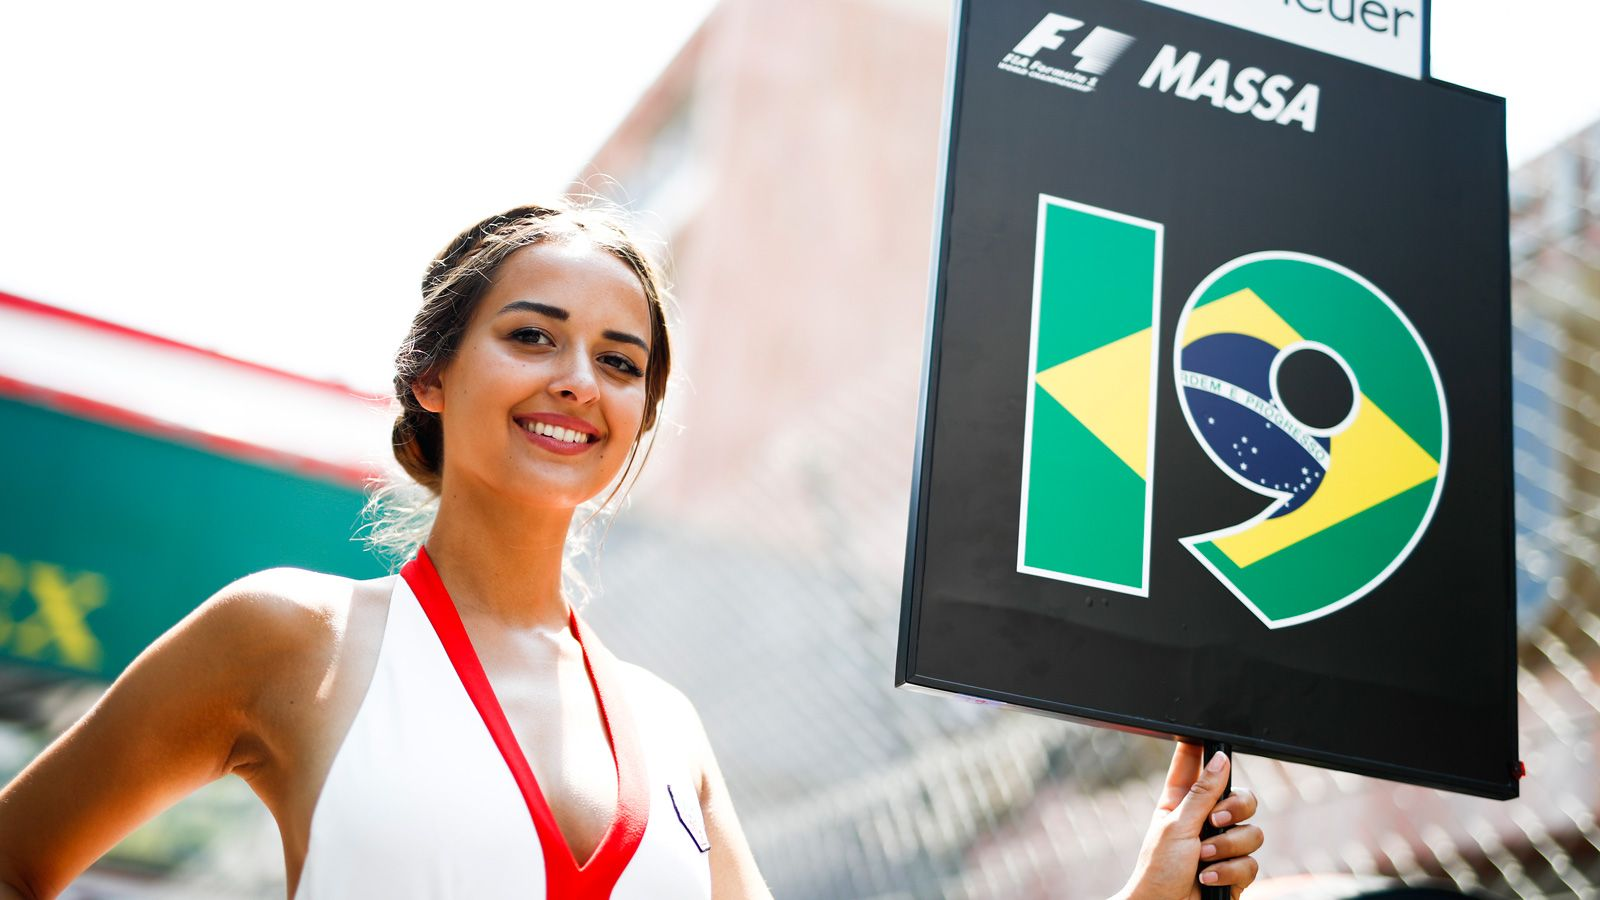 Monaco Gp Thumbs Nose At F1 Liberty Media Grid Girls Are Back